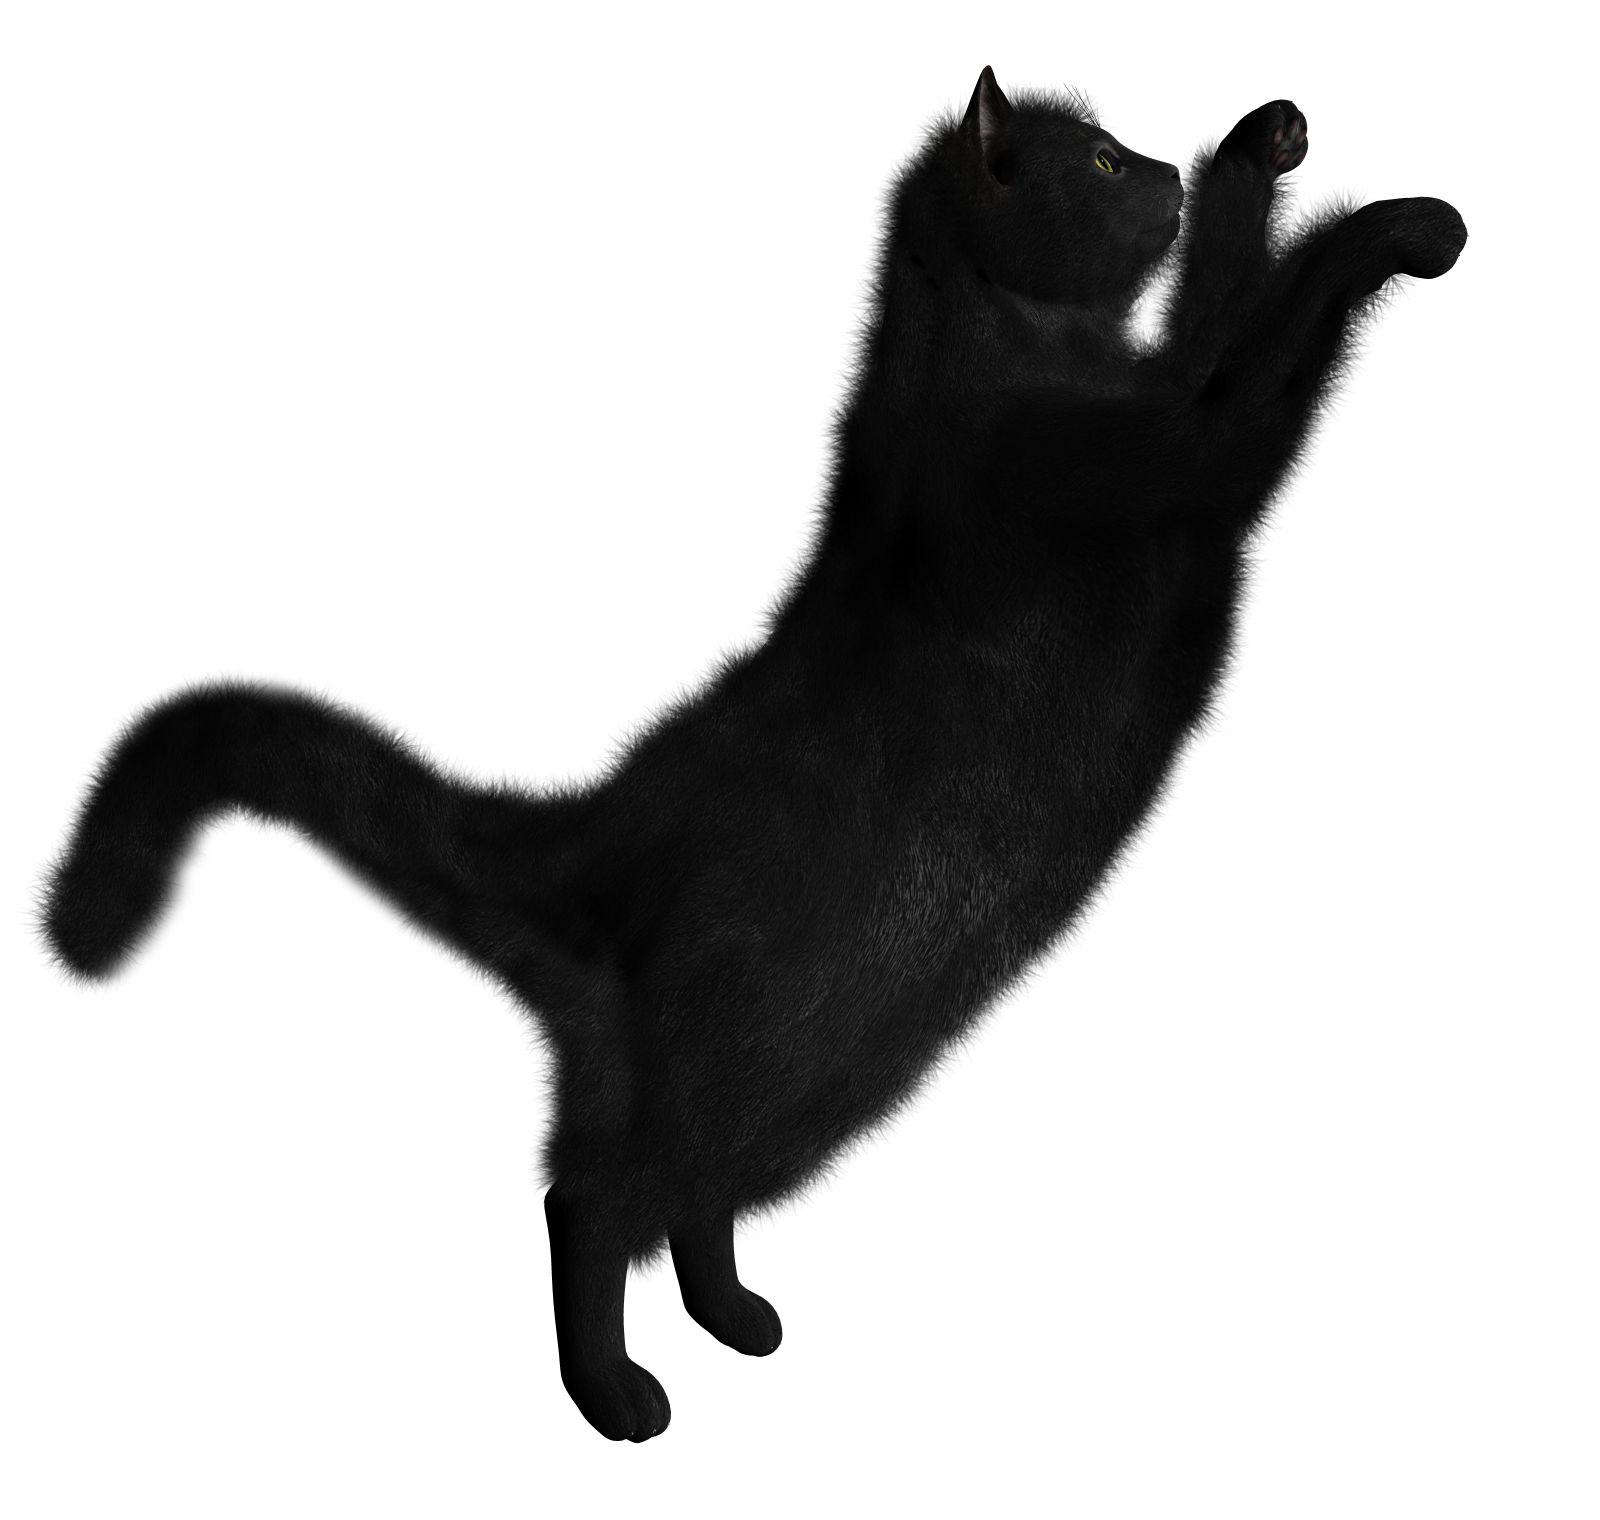 Download Free High-quality Black Cat Png Transparent Images image #30348